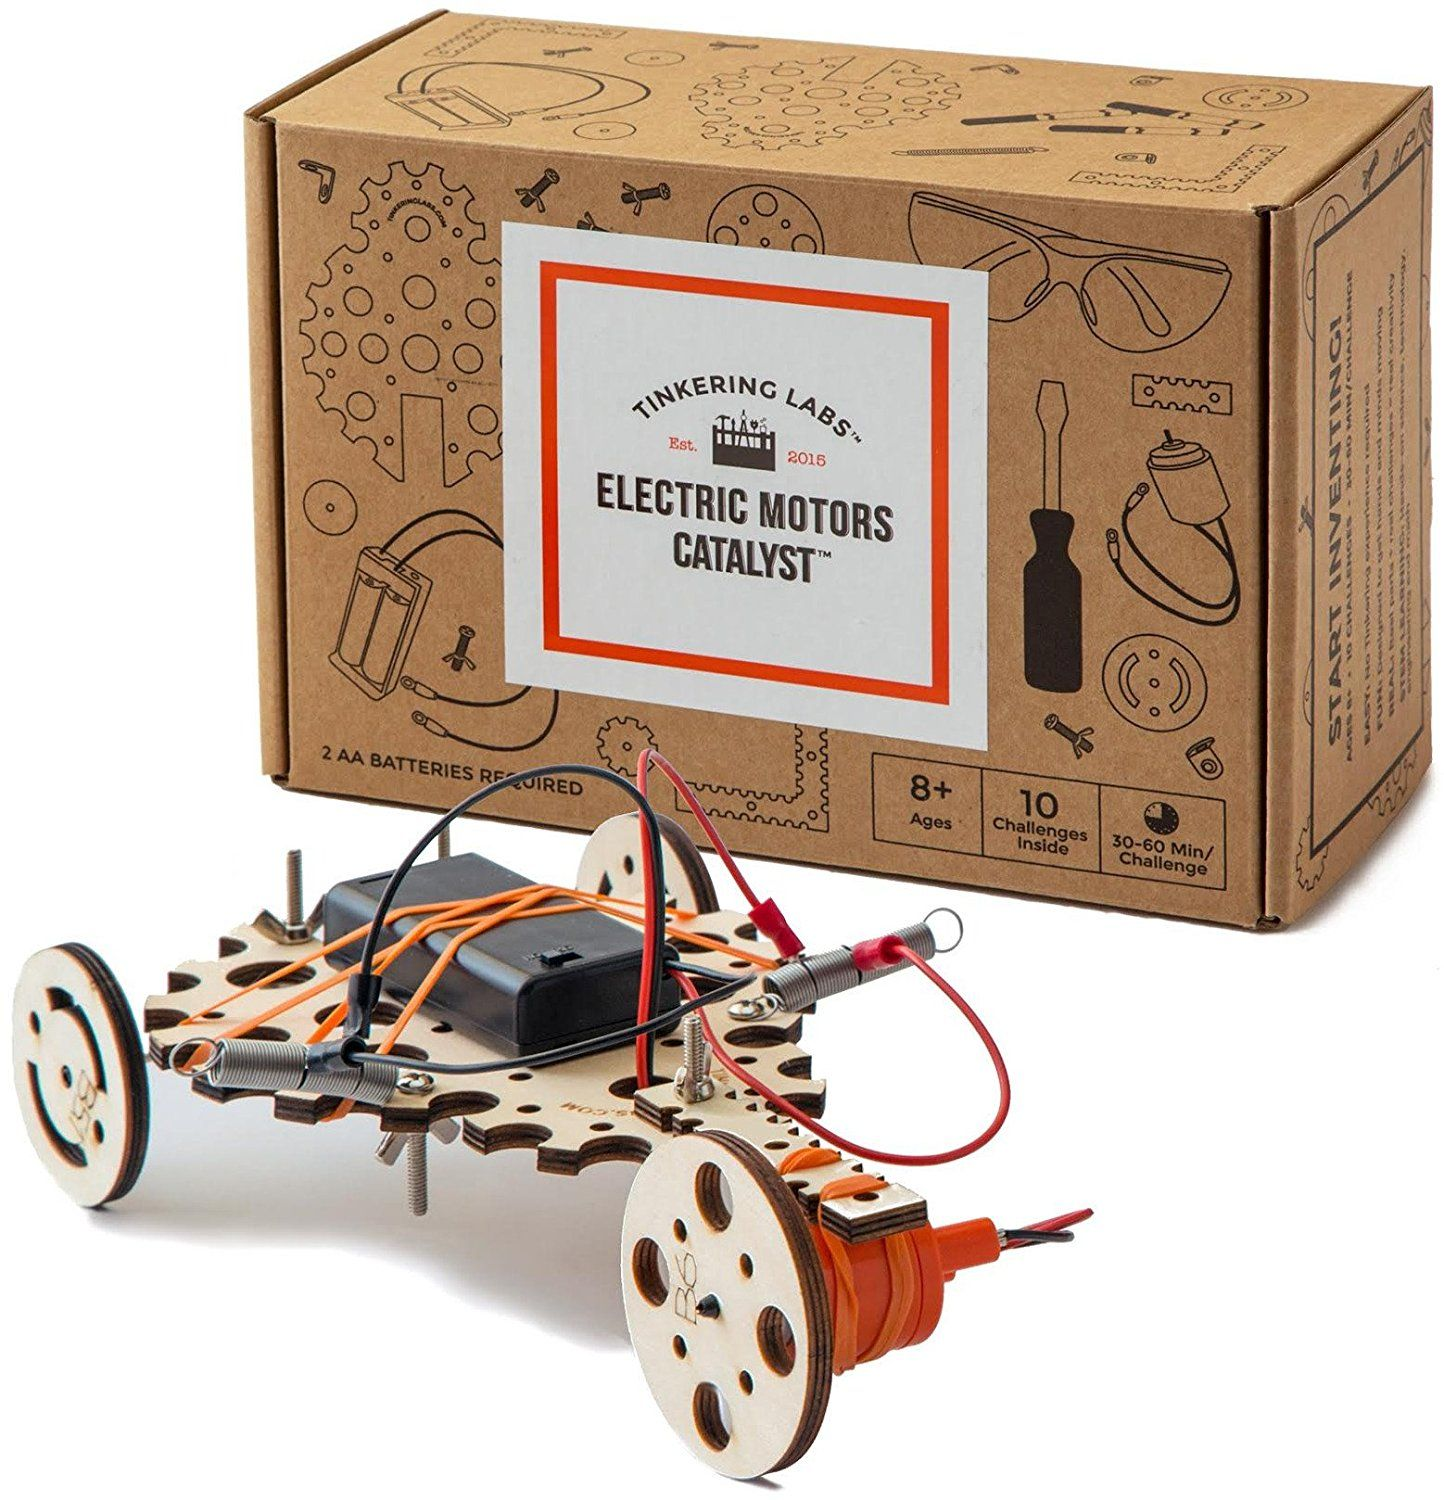 Amazoncom Tinkering Labs Electric Motors Catalyst Toys Games Snap Circuits Arcade Out Of The Blue